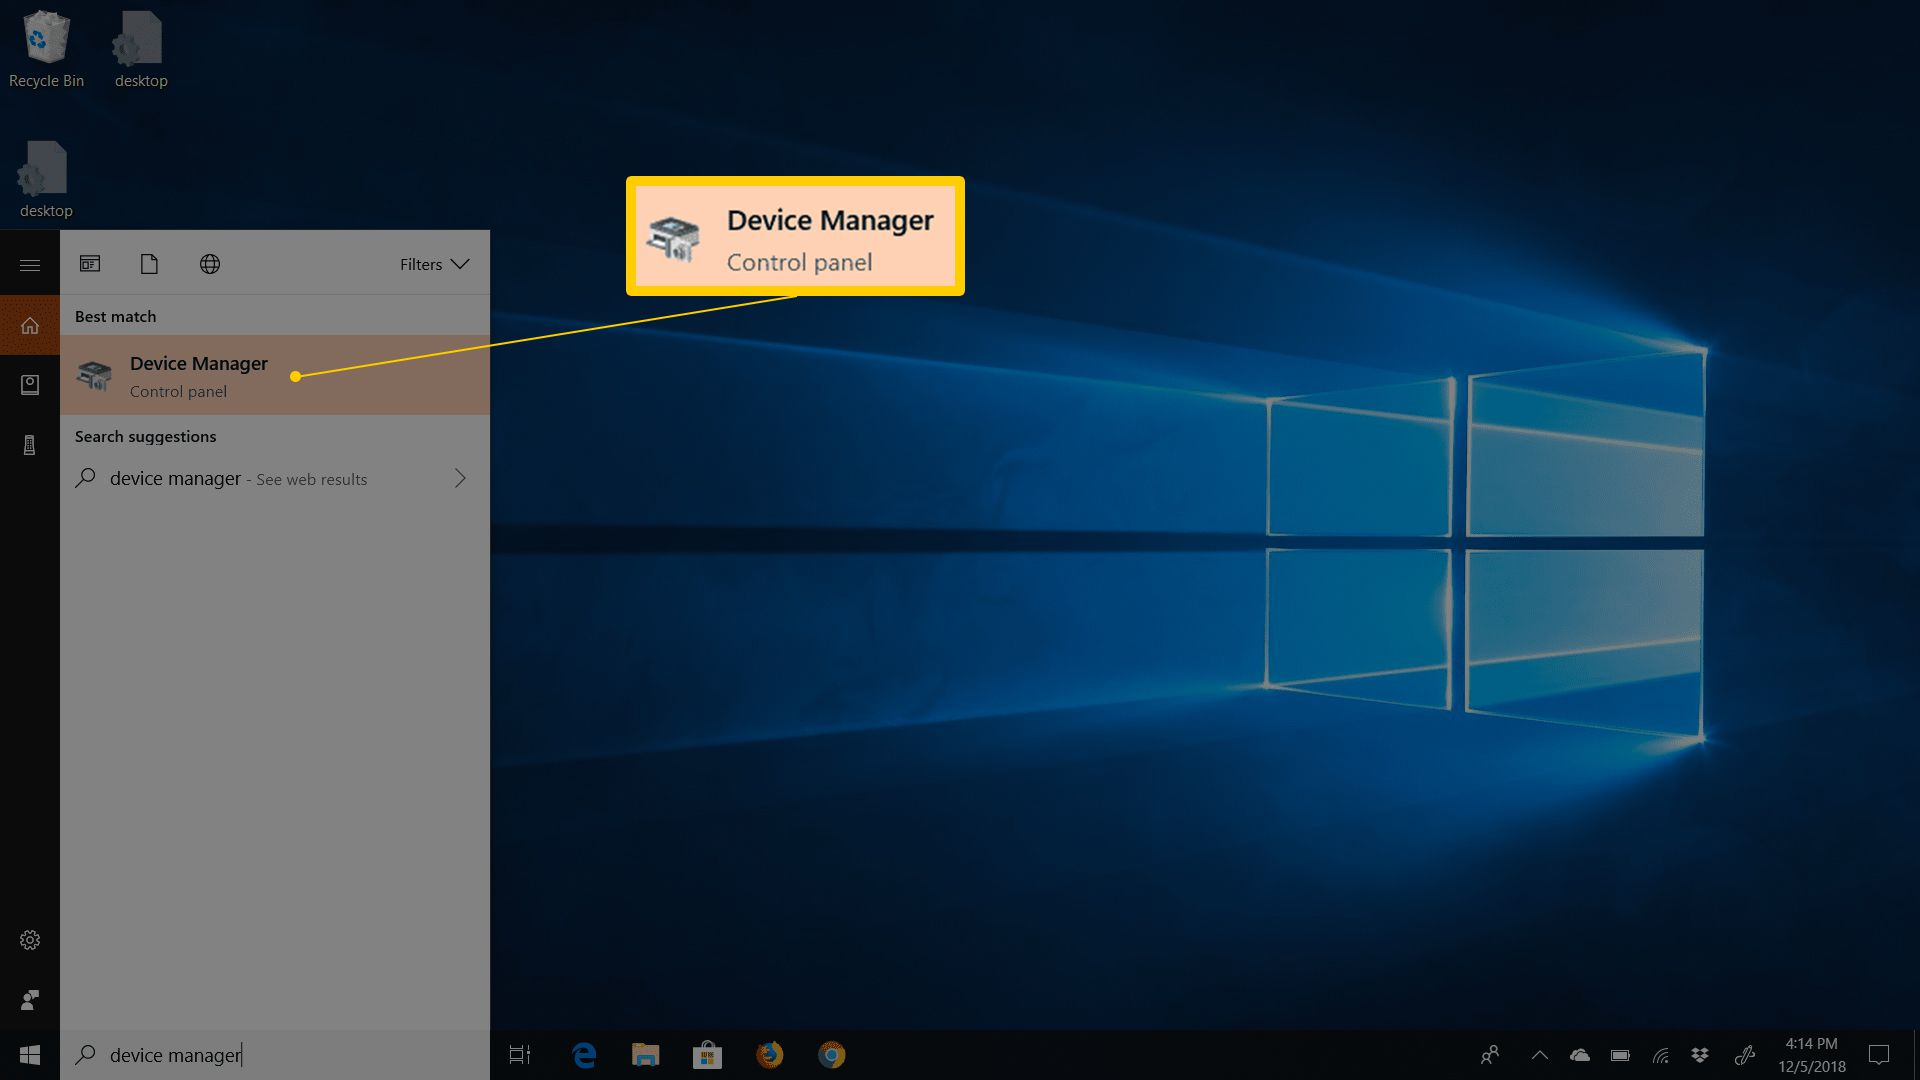 Device Manager in Start menu on Windows 10